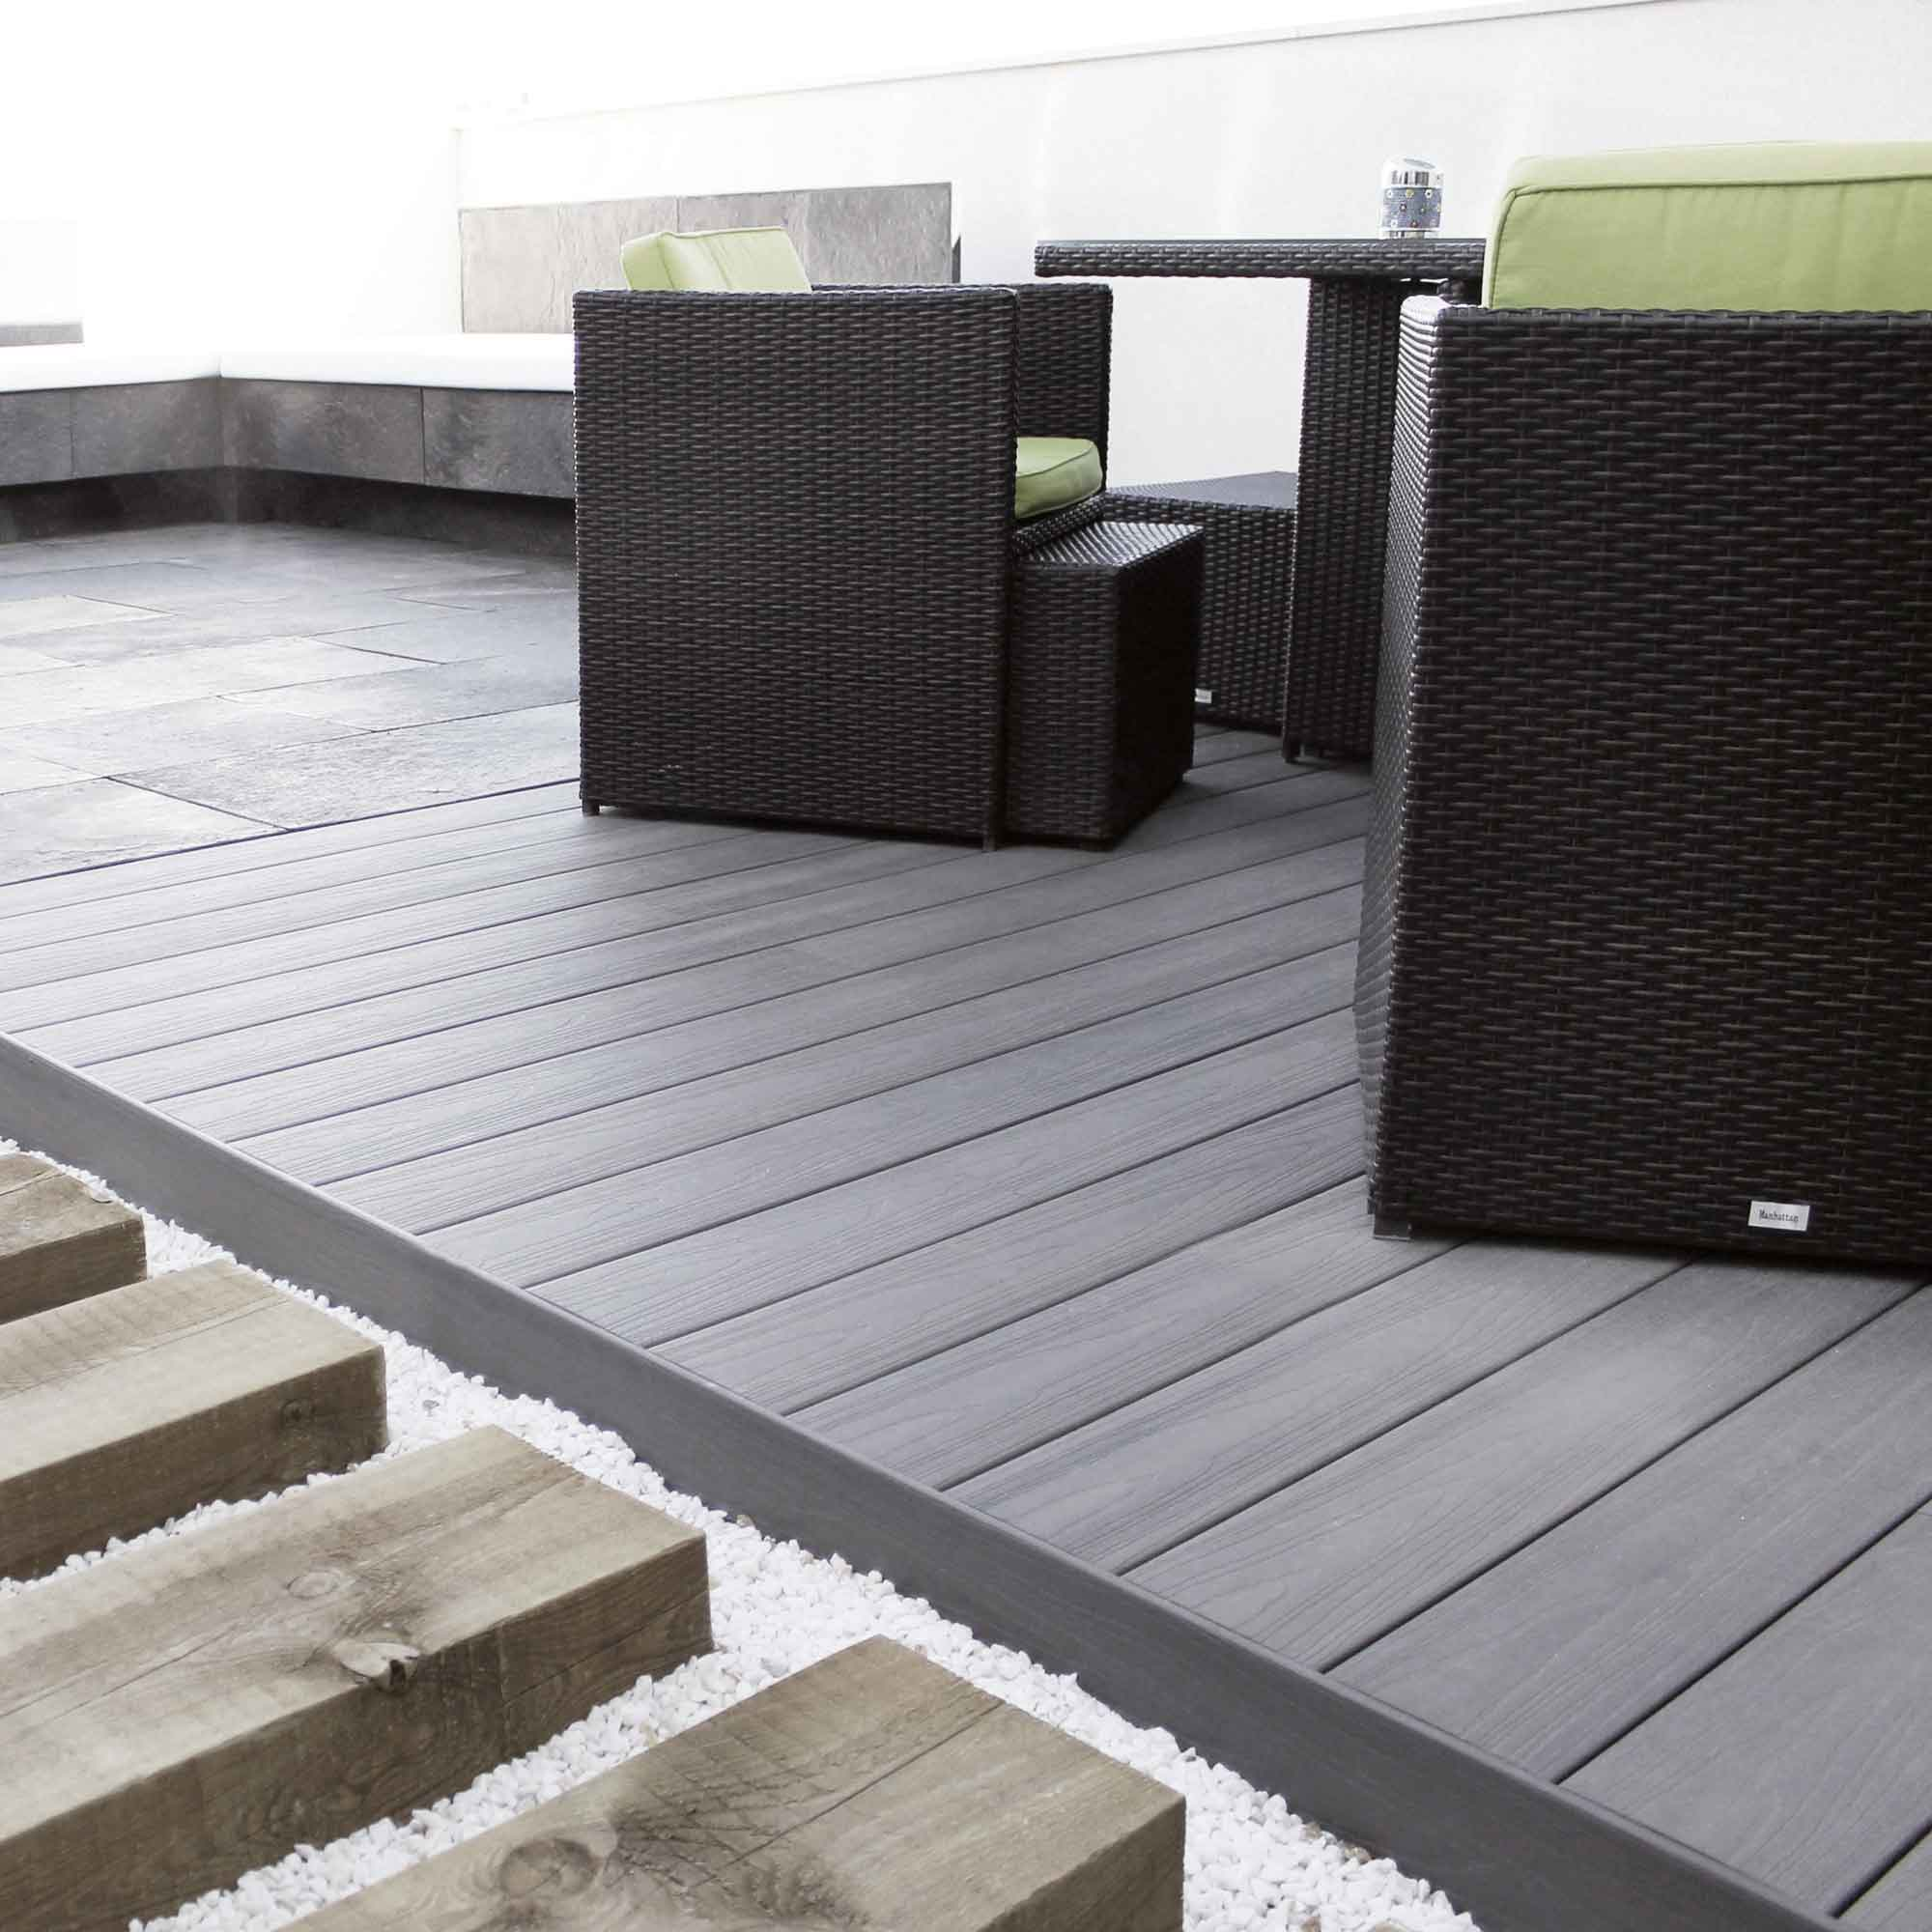 pflegeleichte terrassendielen wpc bpc holzland verbeek. Black Bedroom Furniture Sets. Home Design Ideas